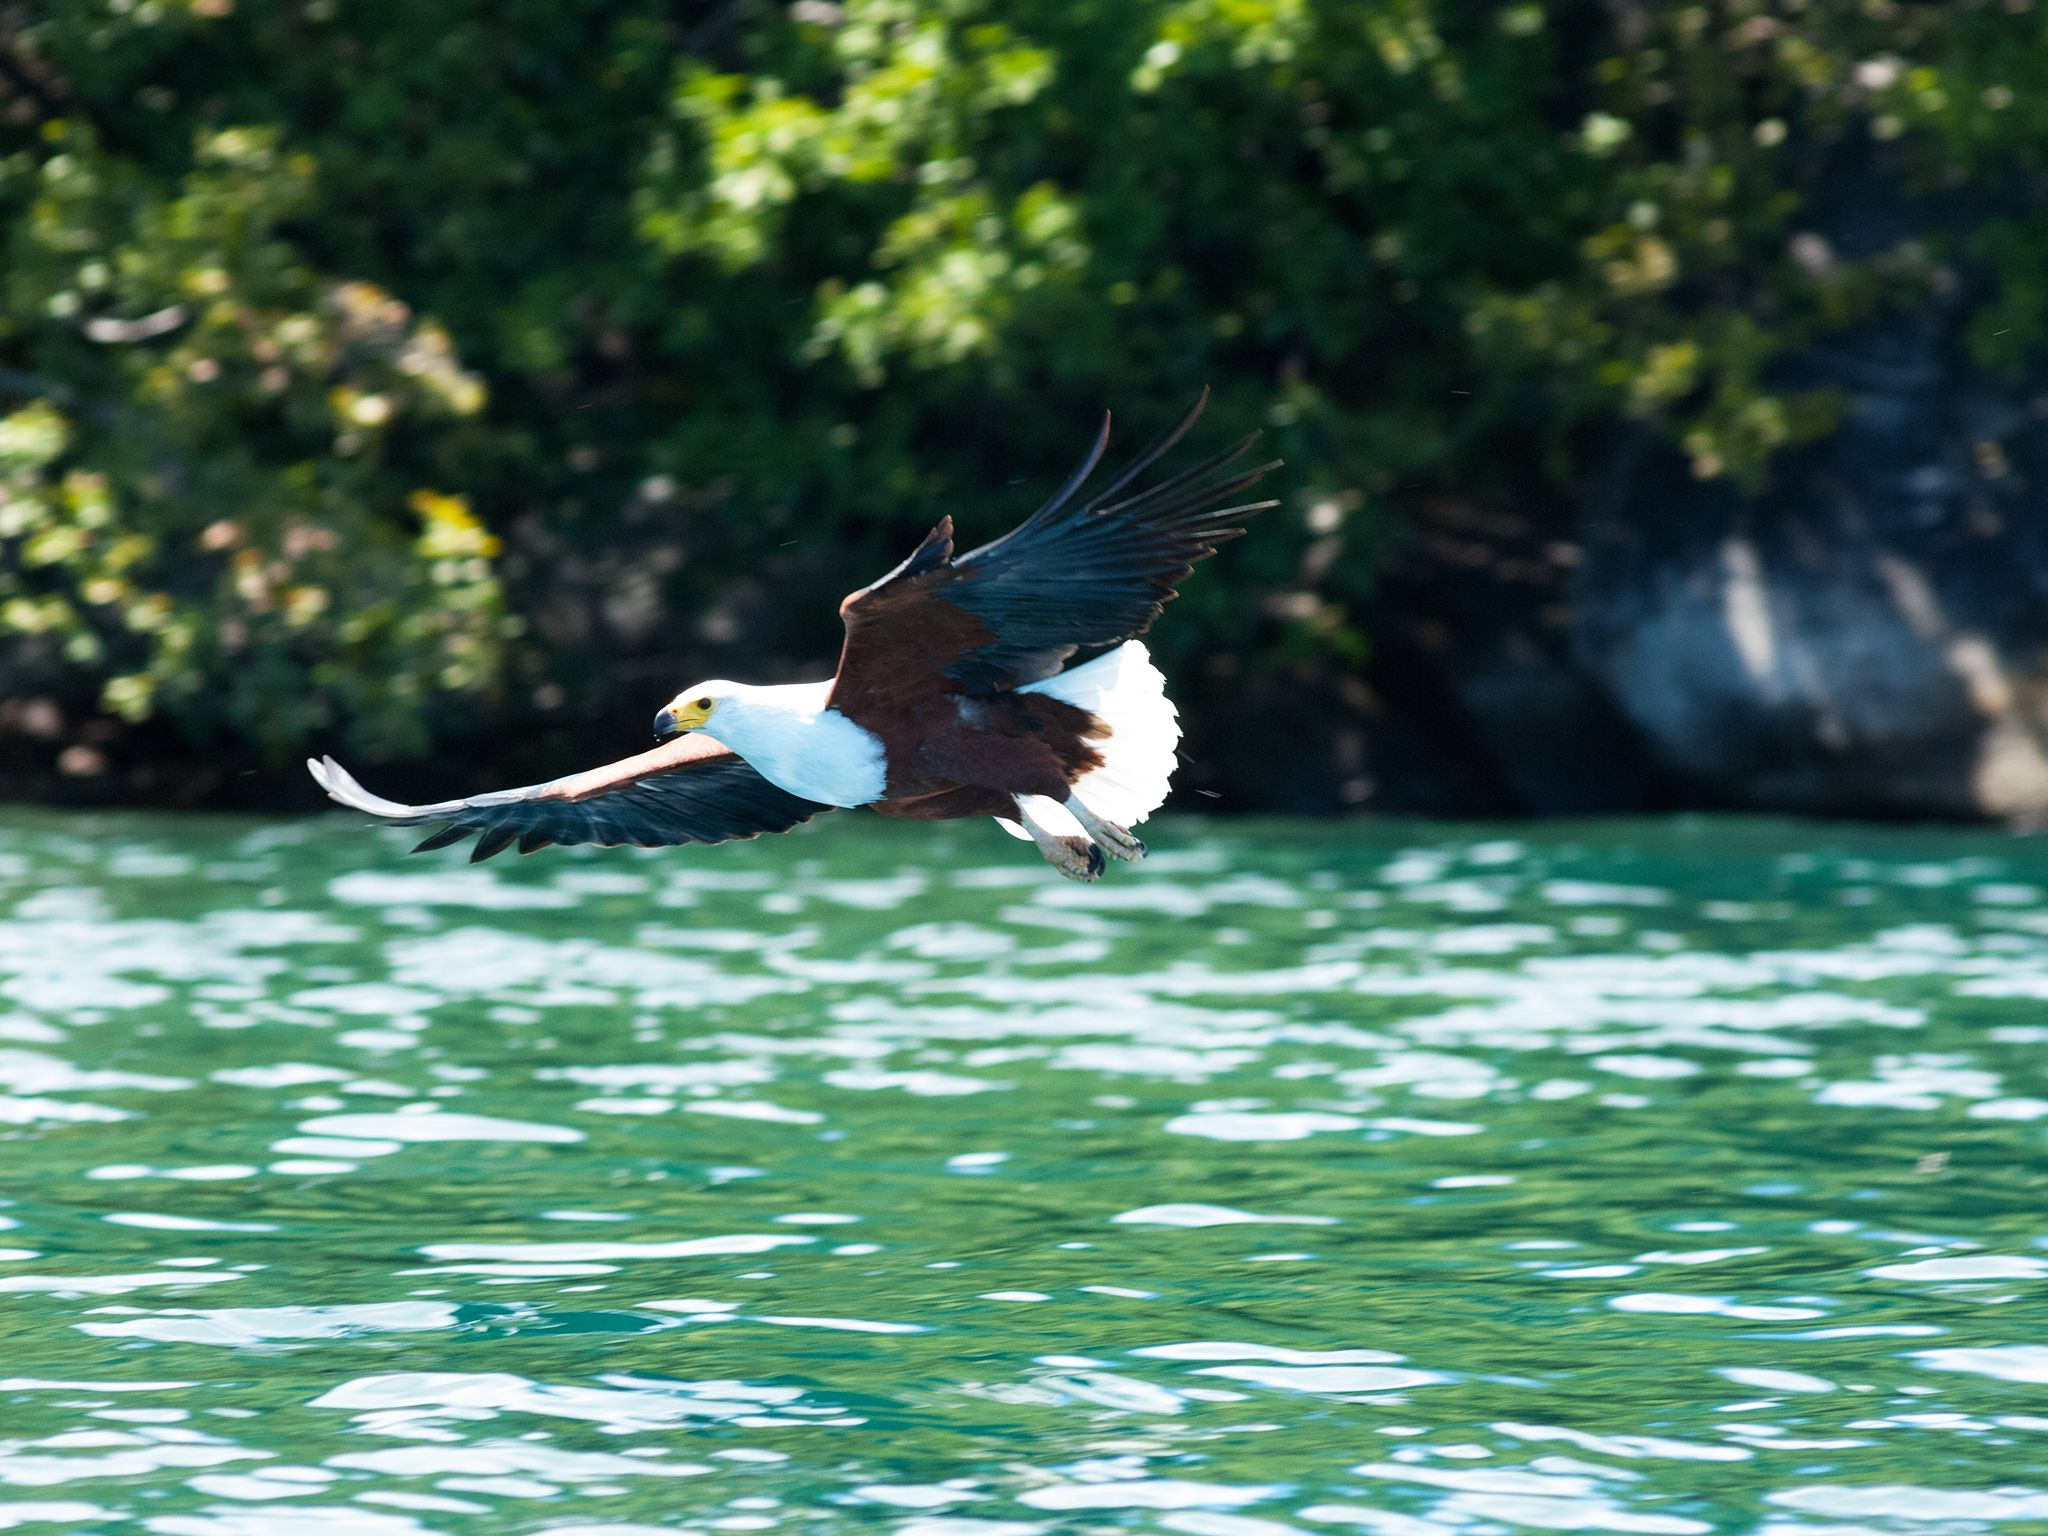 Malawi: A Fish Eagle flies over water in Malawi. This image is from Predator Fails. [Photo of the day - 一月 2015]